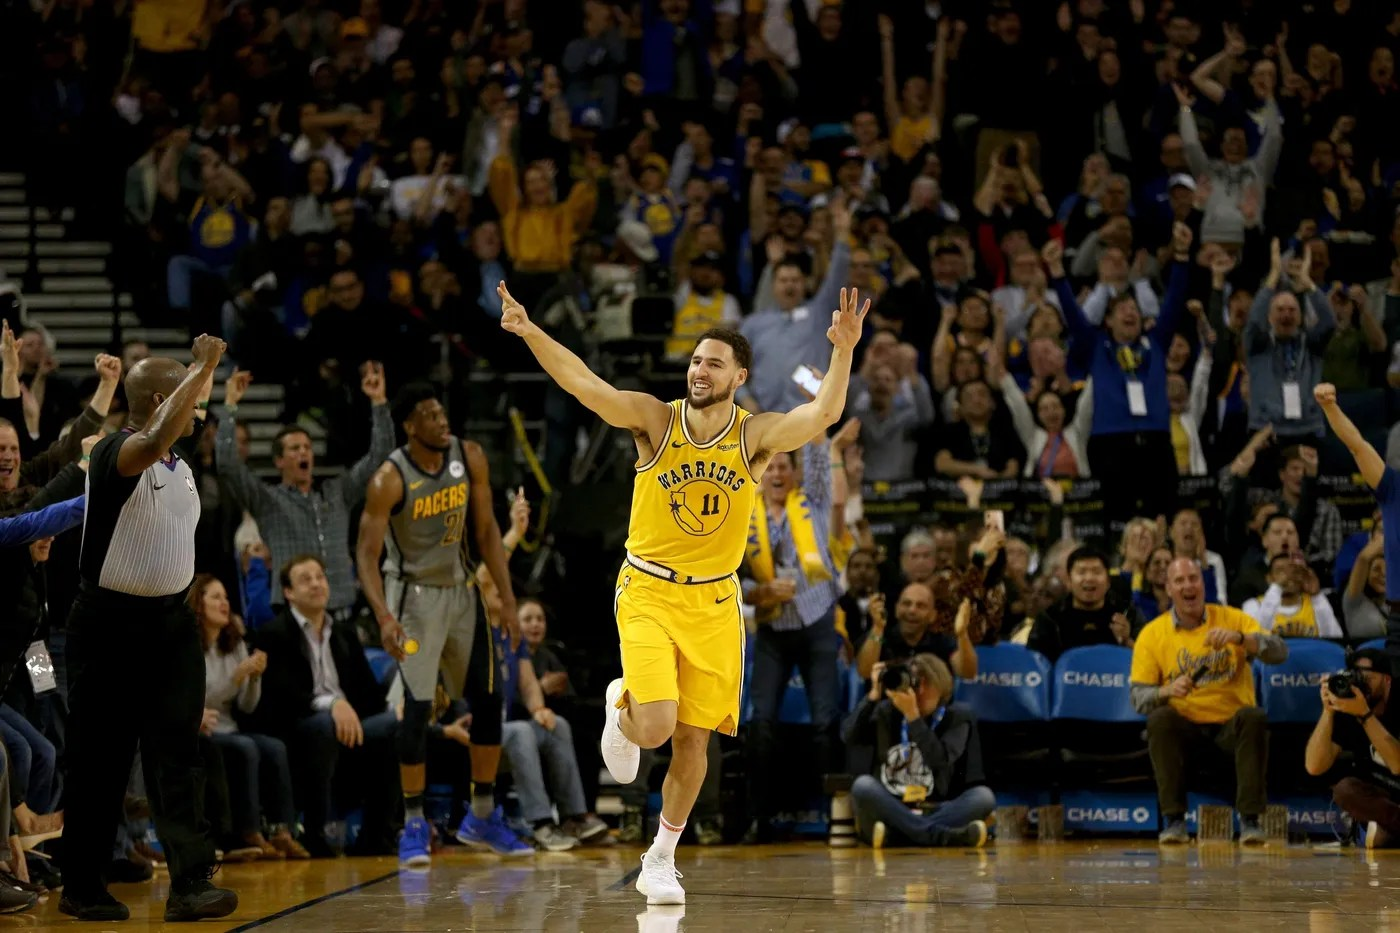 Mar 21, 2019; Oakland, CA, USA; Golden State Warriors guard Klay Thompson (11) reacts after making a three point shot against the Indiana Pacers in the second quarter at Oracle Arena. Mandatory Credit: Cary Edmondson-USA TODAY Sports